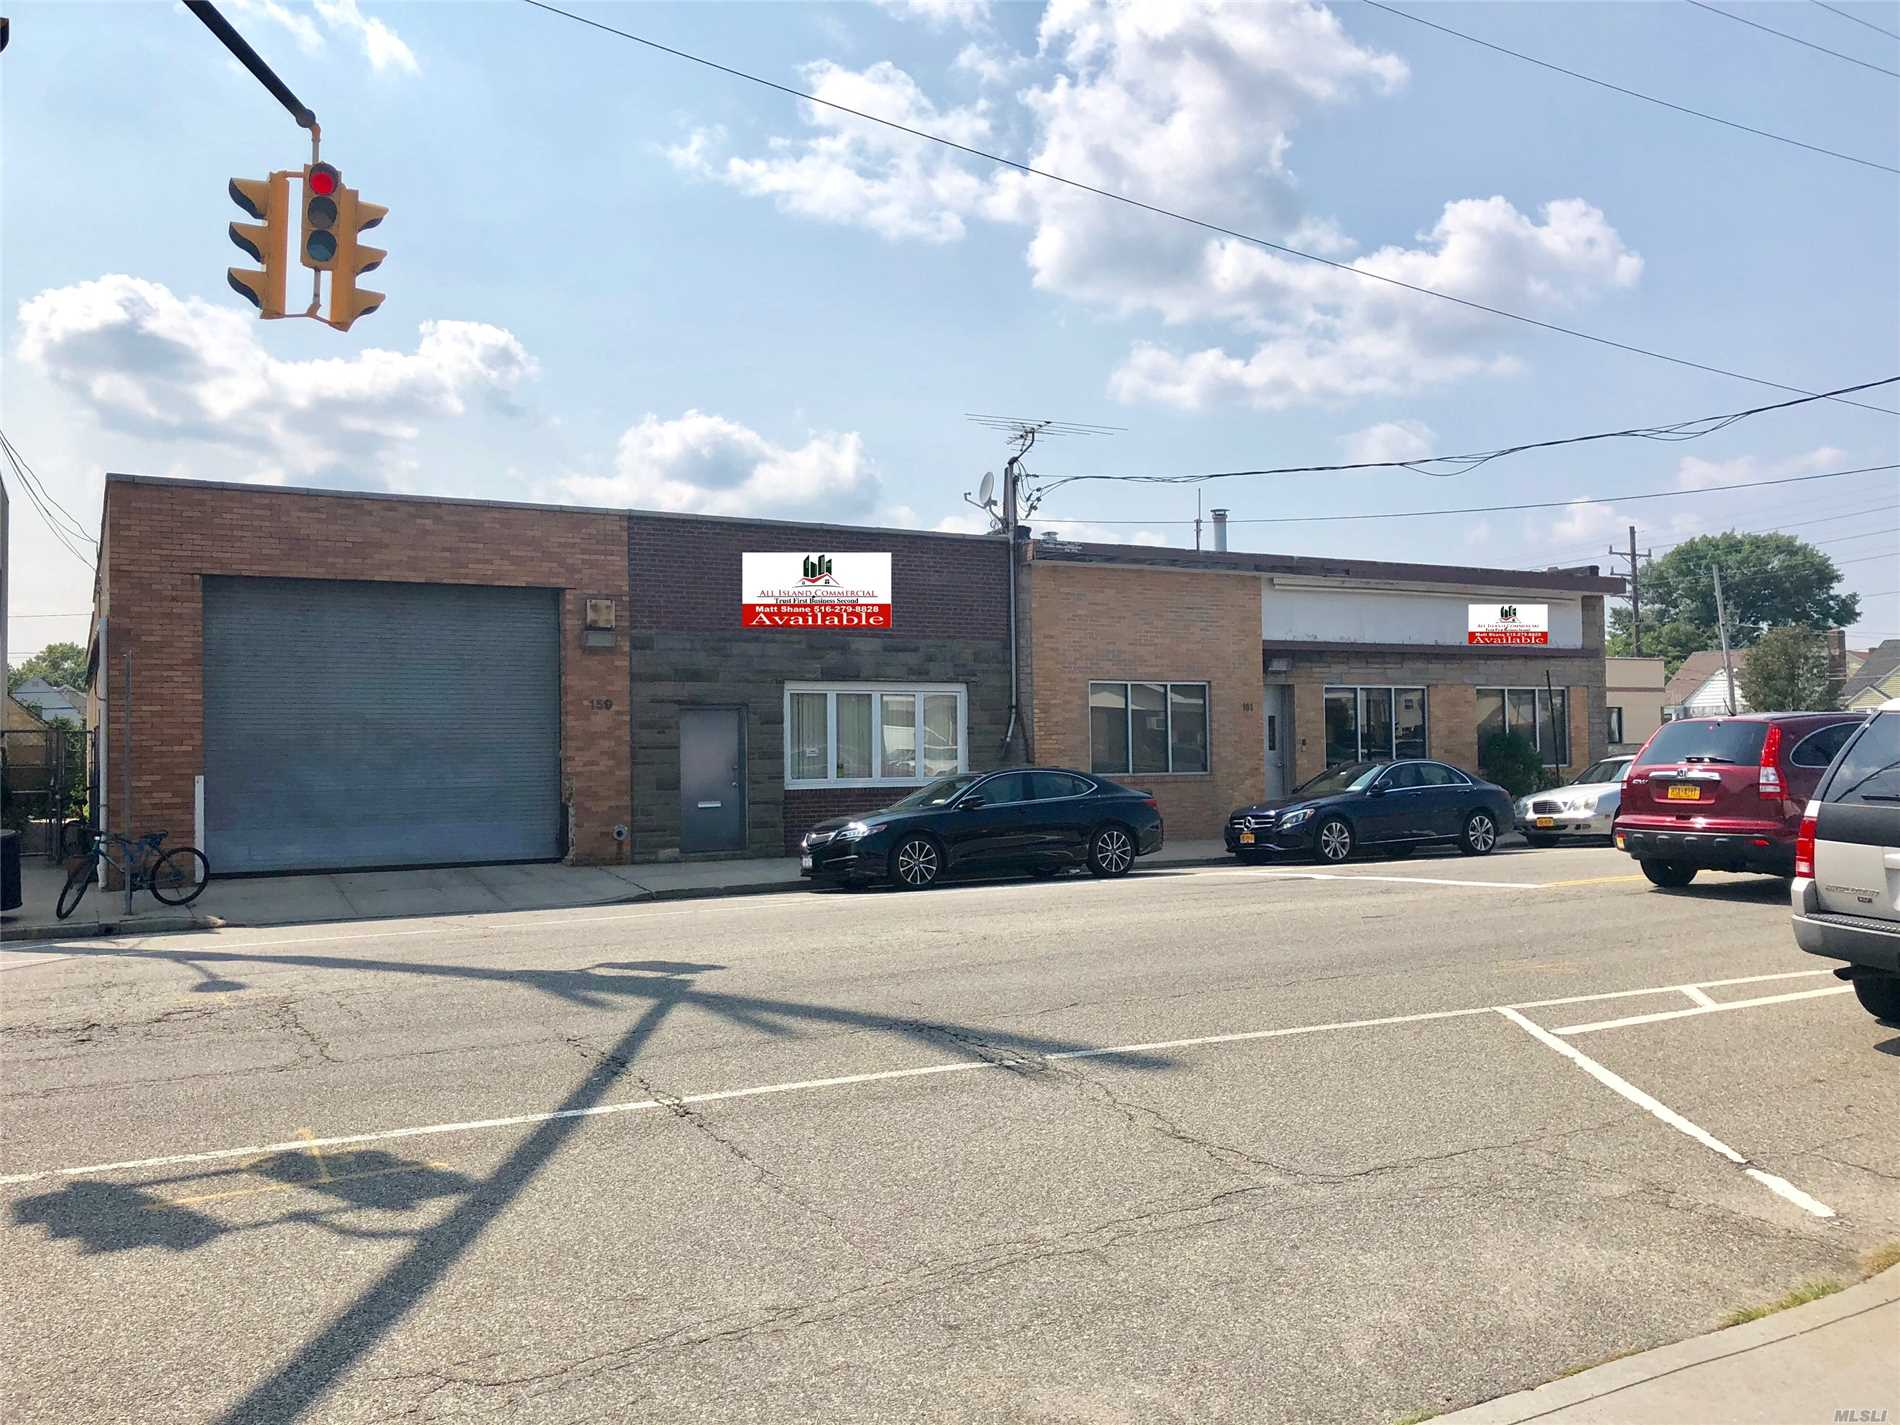 Brand New Office With 5 Private Offices Private Bathrooms, High Ceilings. 7, 000 Sgft. Open Warehouse Features High 14 Ceilings. 14X22 Rollin Doors, New Led Lighting Throughout The New Office & Warehouse. This Building Is Very Modern Clean & Bright. Owner Has Clean Environmental Report.